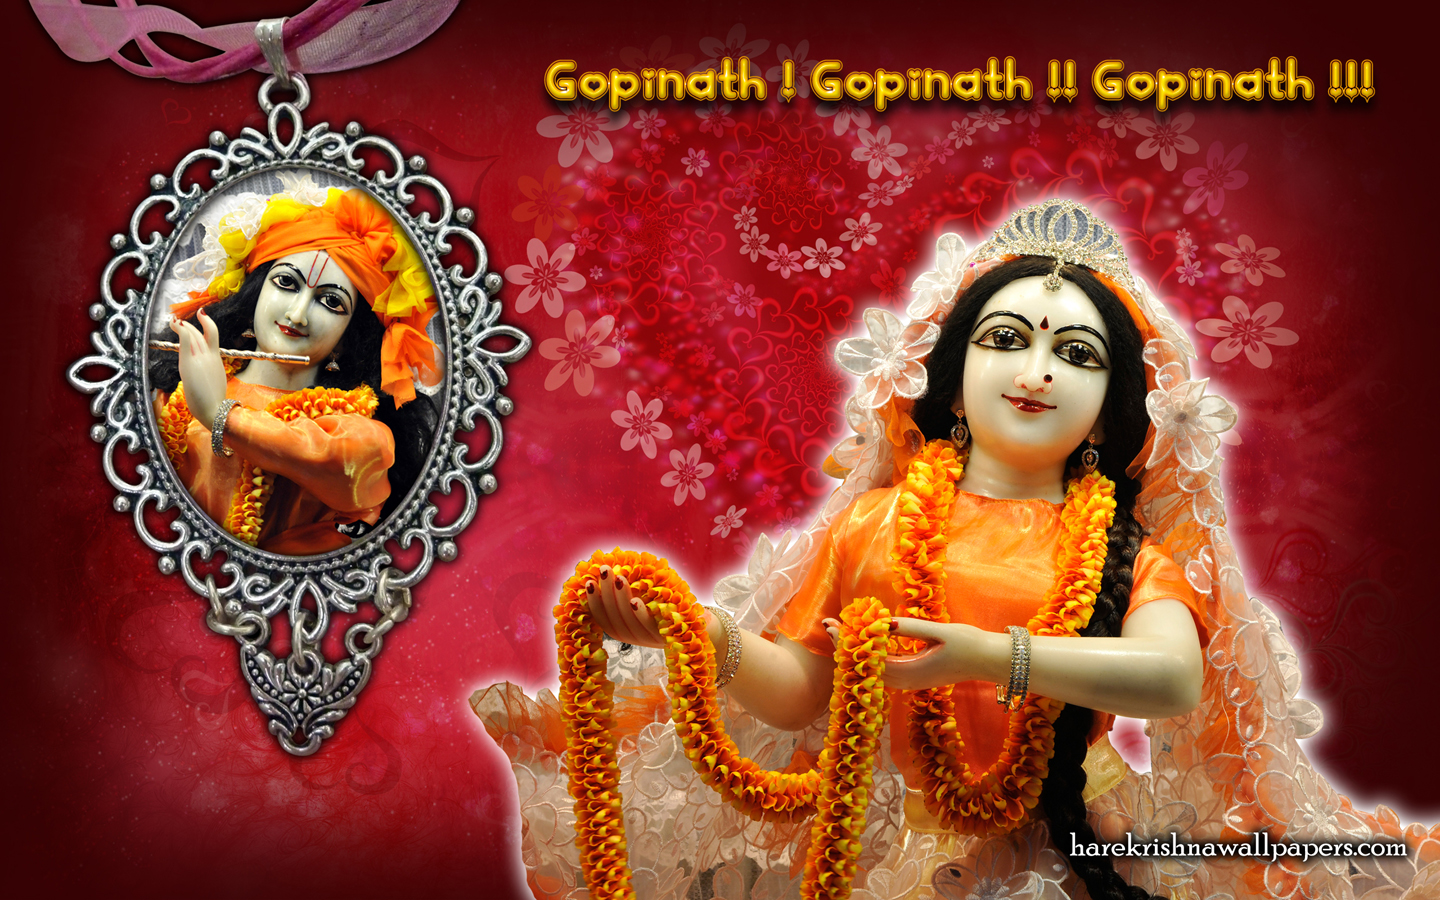 Sri Sri Radha Gopinath Wallpaper (001) Size 1440x900 Download